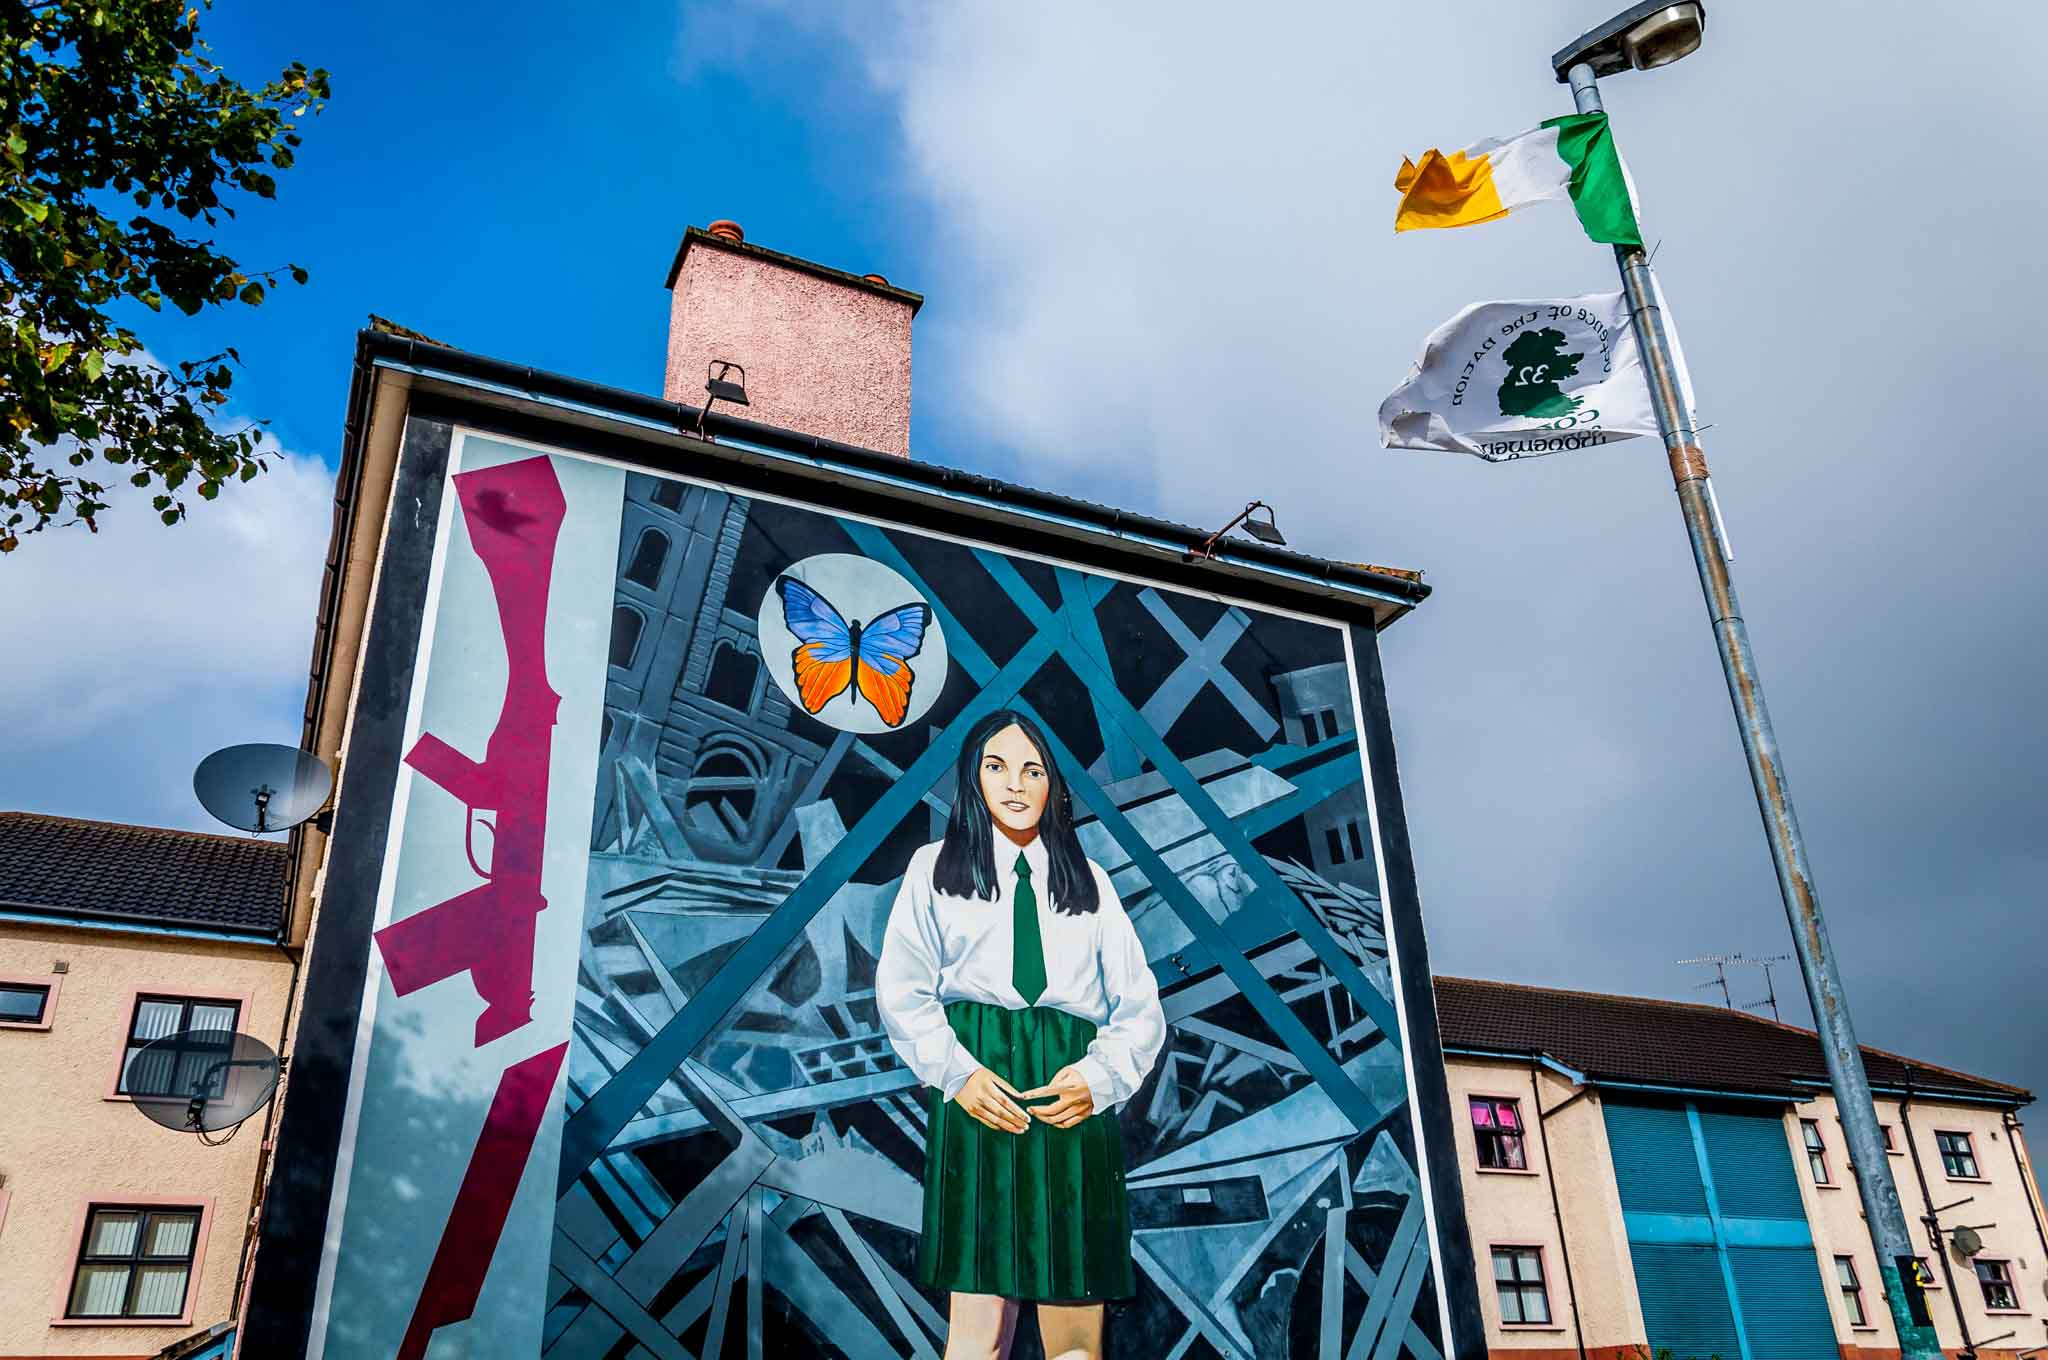 End of Innocence, one of the Derry murals of Northern Ireland